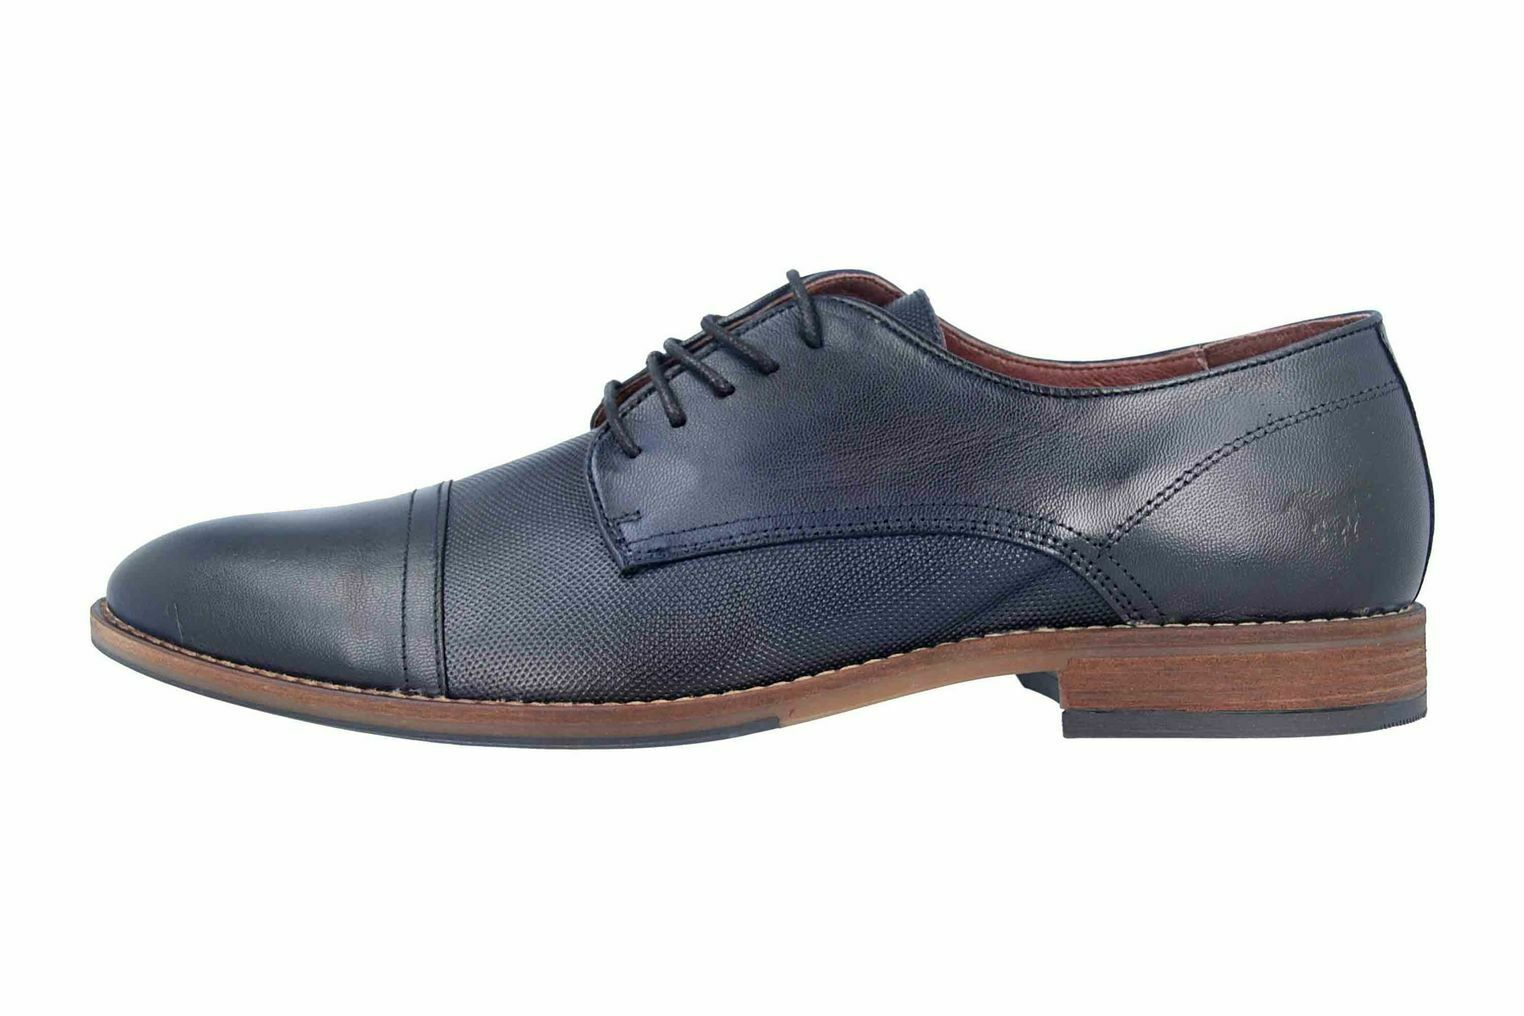 Mustang shoes Low shoes in Plus Size bluee 4904-304-820 Large Mens shoes